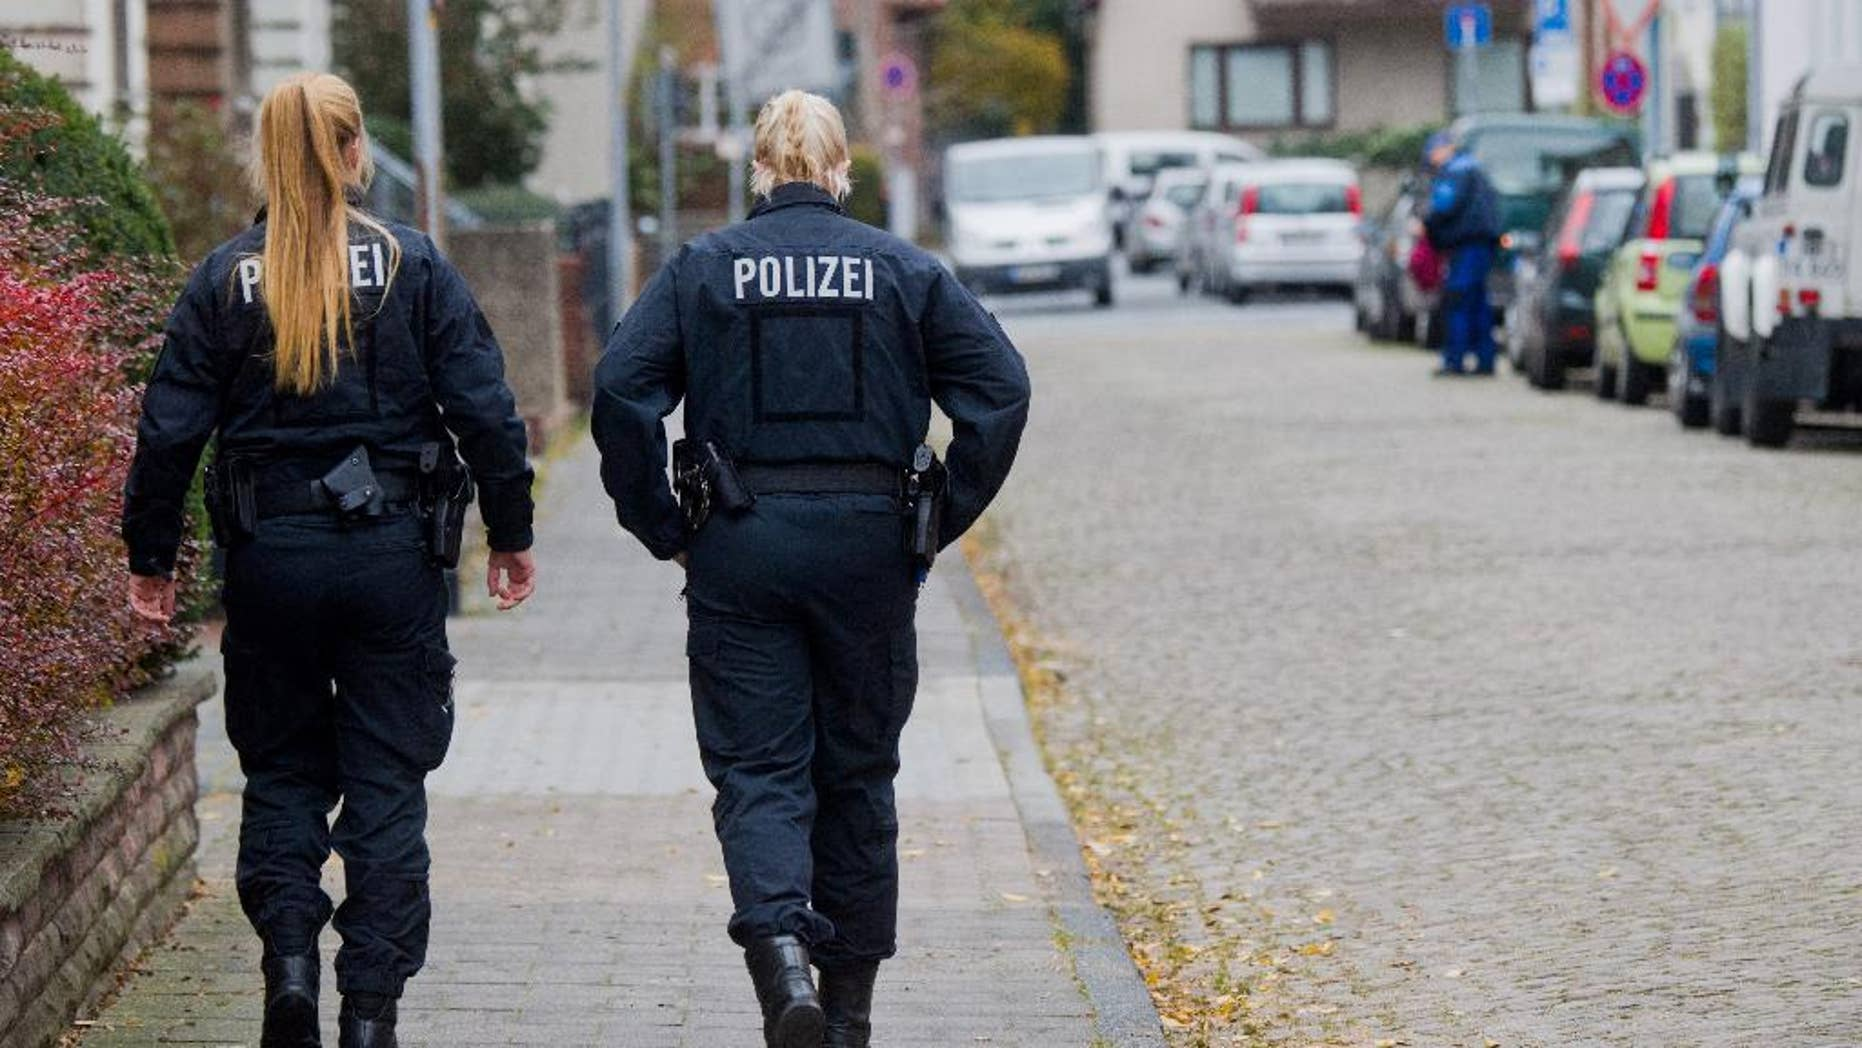 Policewomen  walk along  a street in Hameln, Germany, Monday Nov. 21, 2016. A woman was seriously injured when she was dragged Sunday through the streets of the northern German town behind a car with a cord tied around her neck. Her ex-partner later turned himself in to authorities, prosecutors said Monday,  (Julian Stratenschulte/dpa via AP)